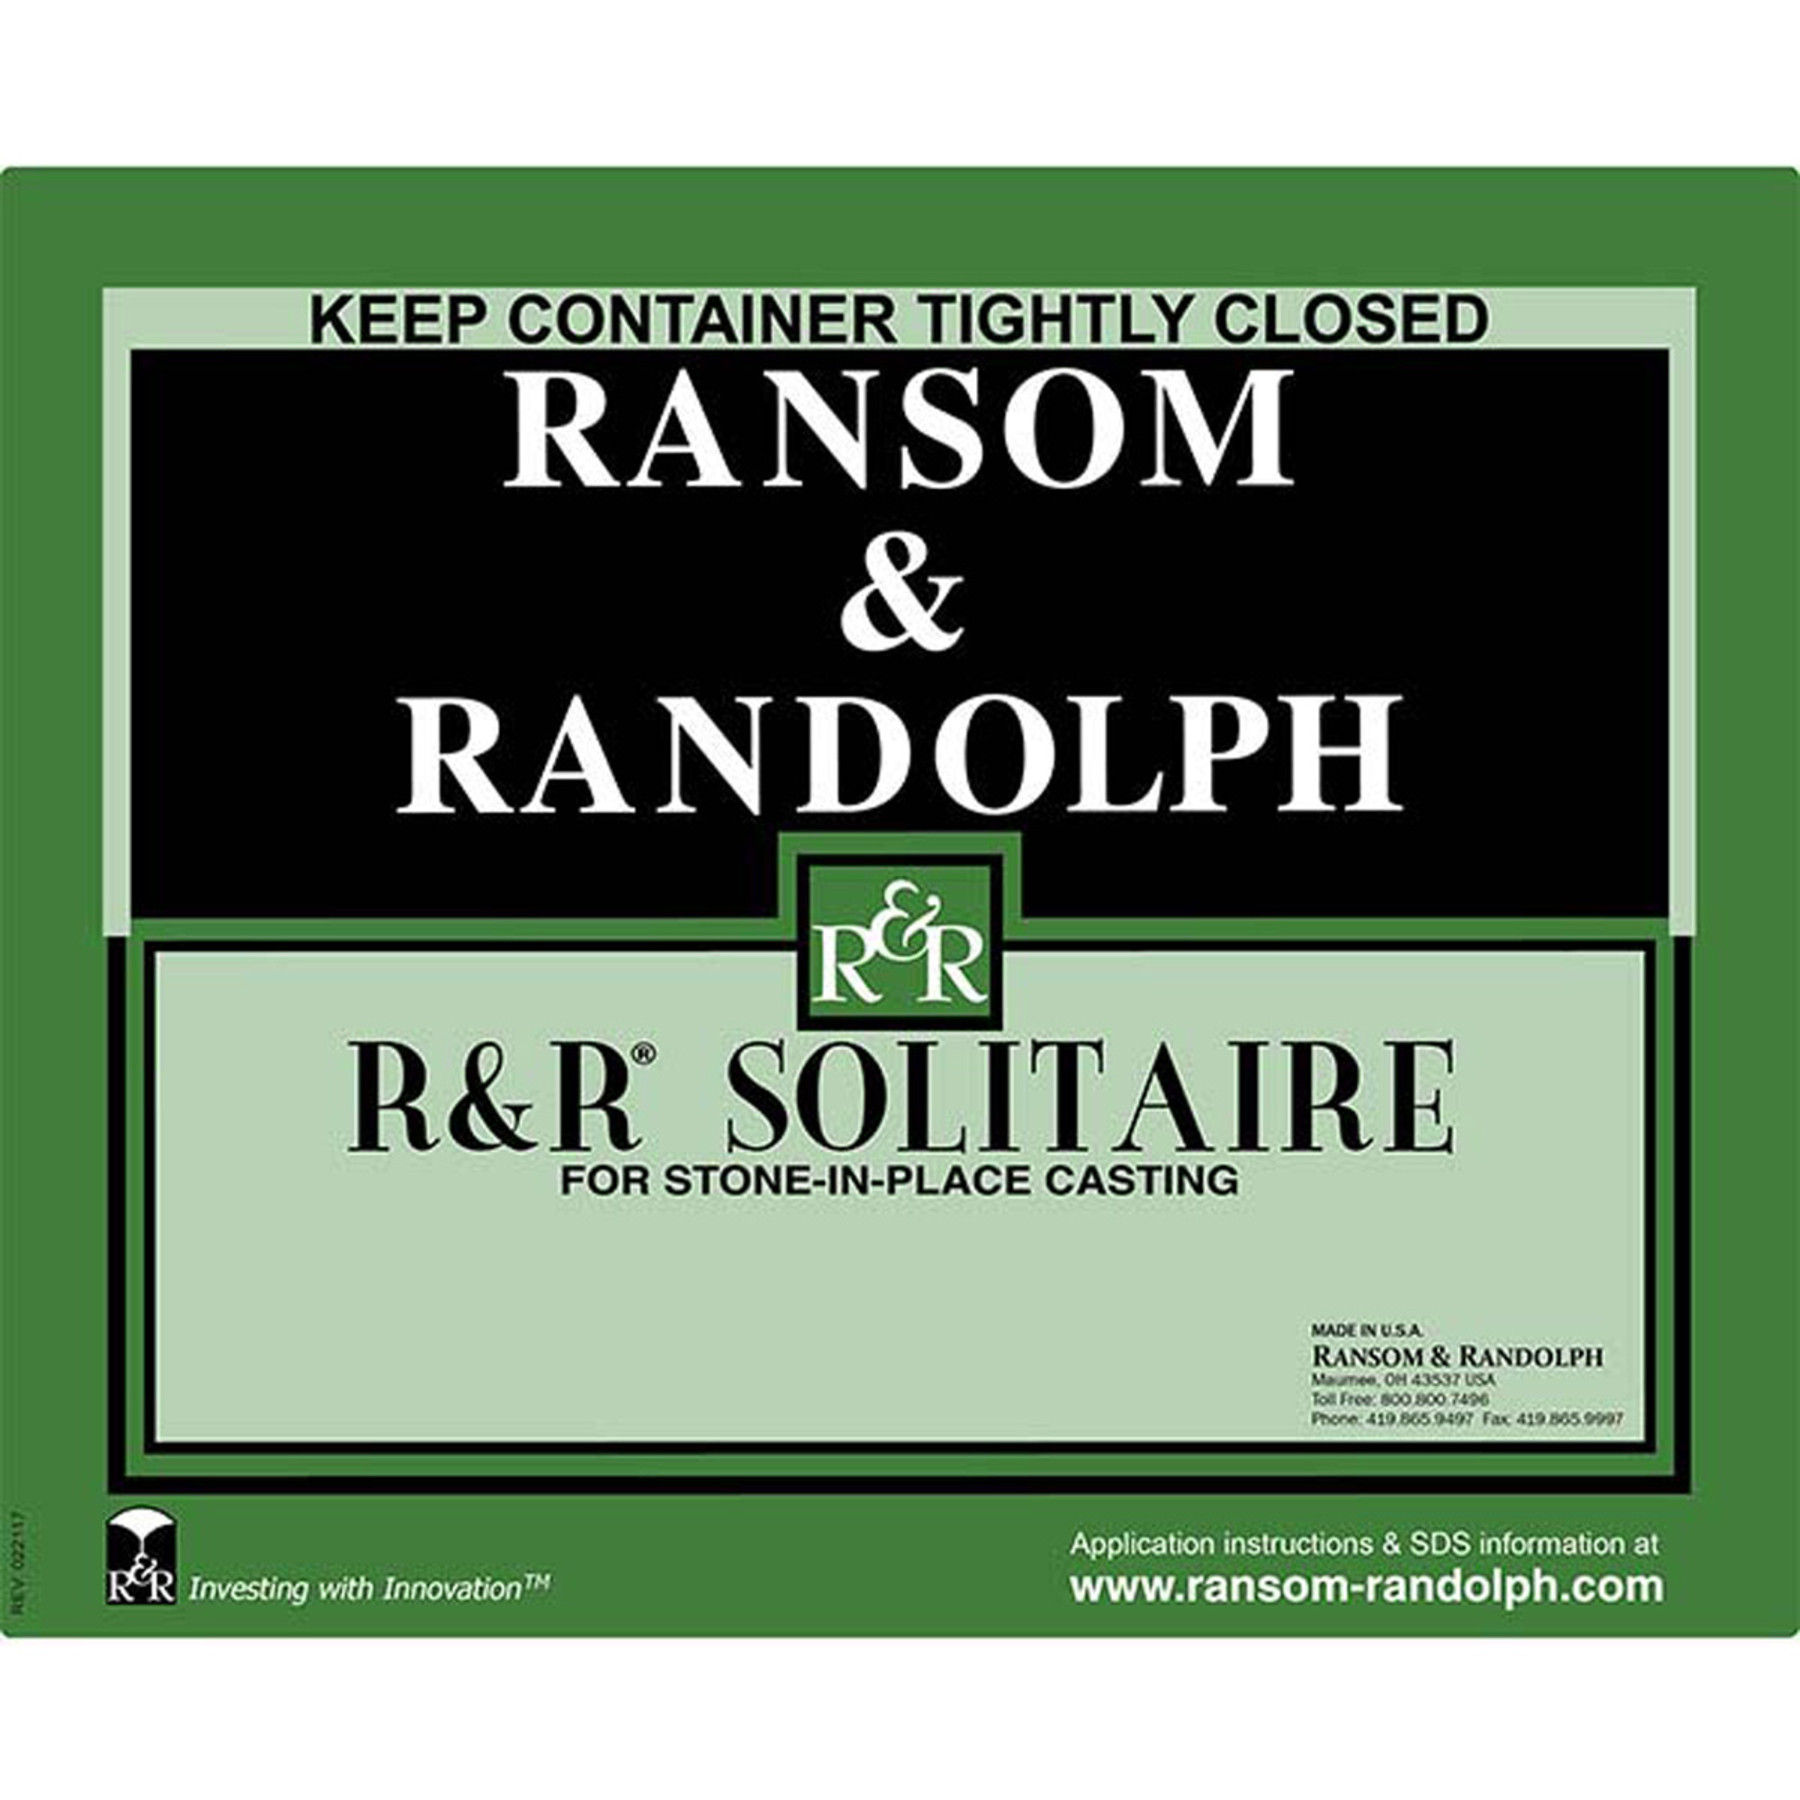 Ransom Randolph Solitaire Stone In Place Investment 50 Lb Box